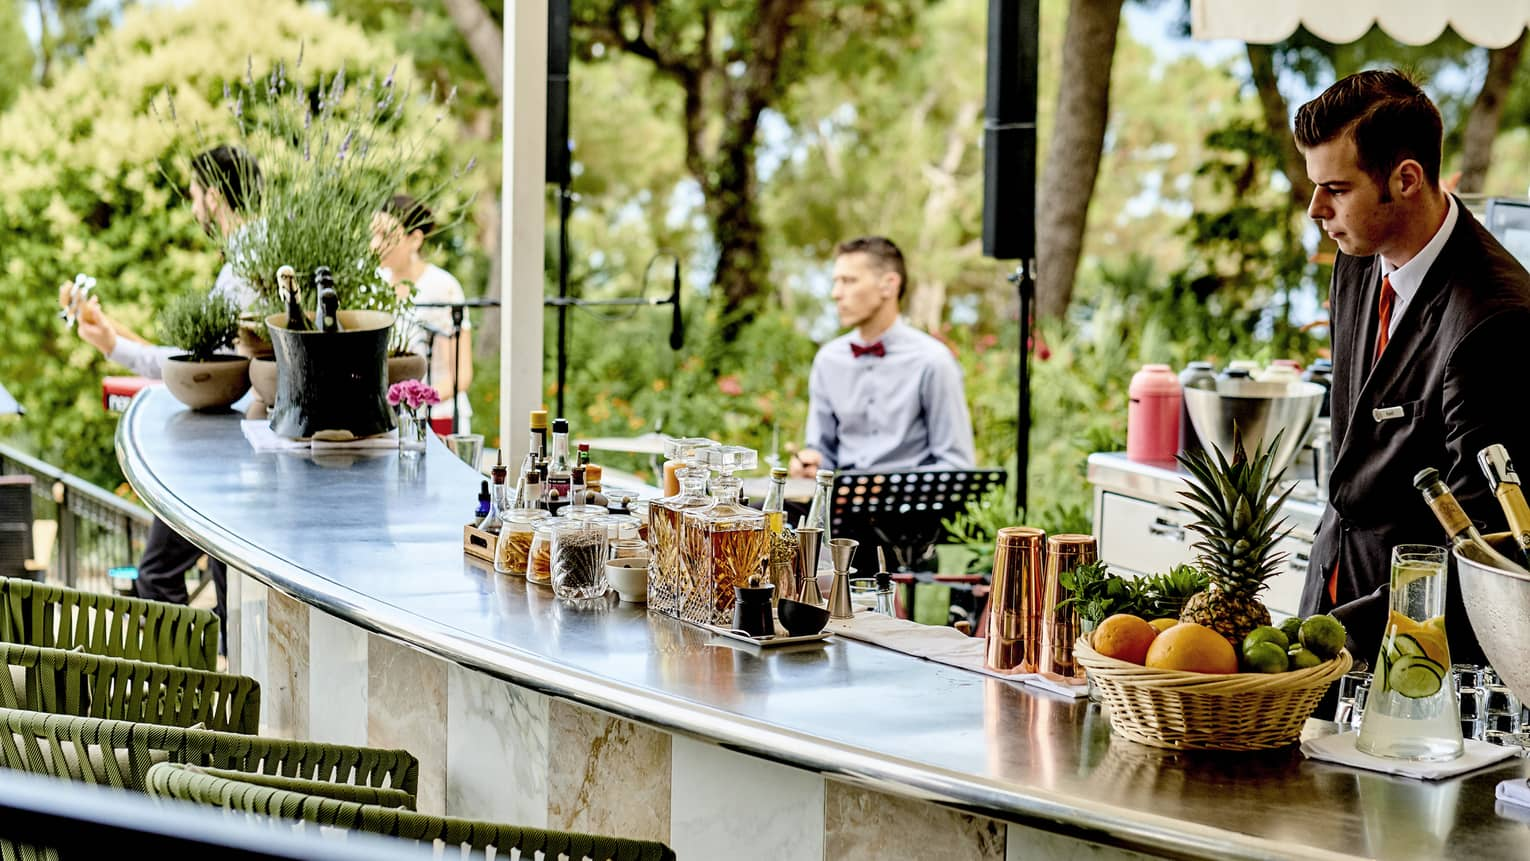 Bartender, staff behind large curved bar with drinks in garden lounge